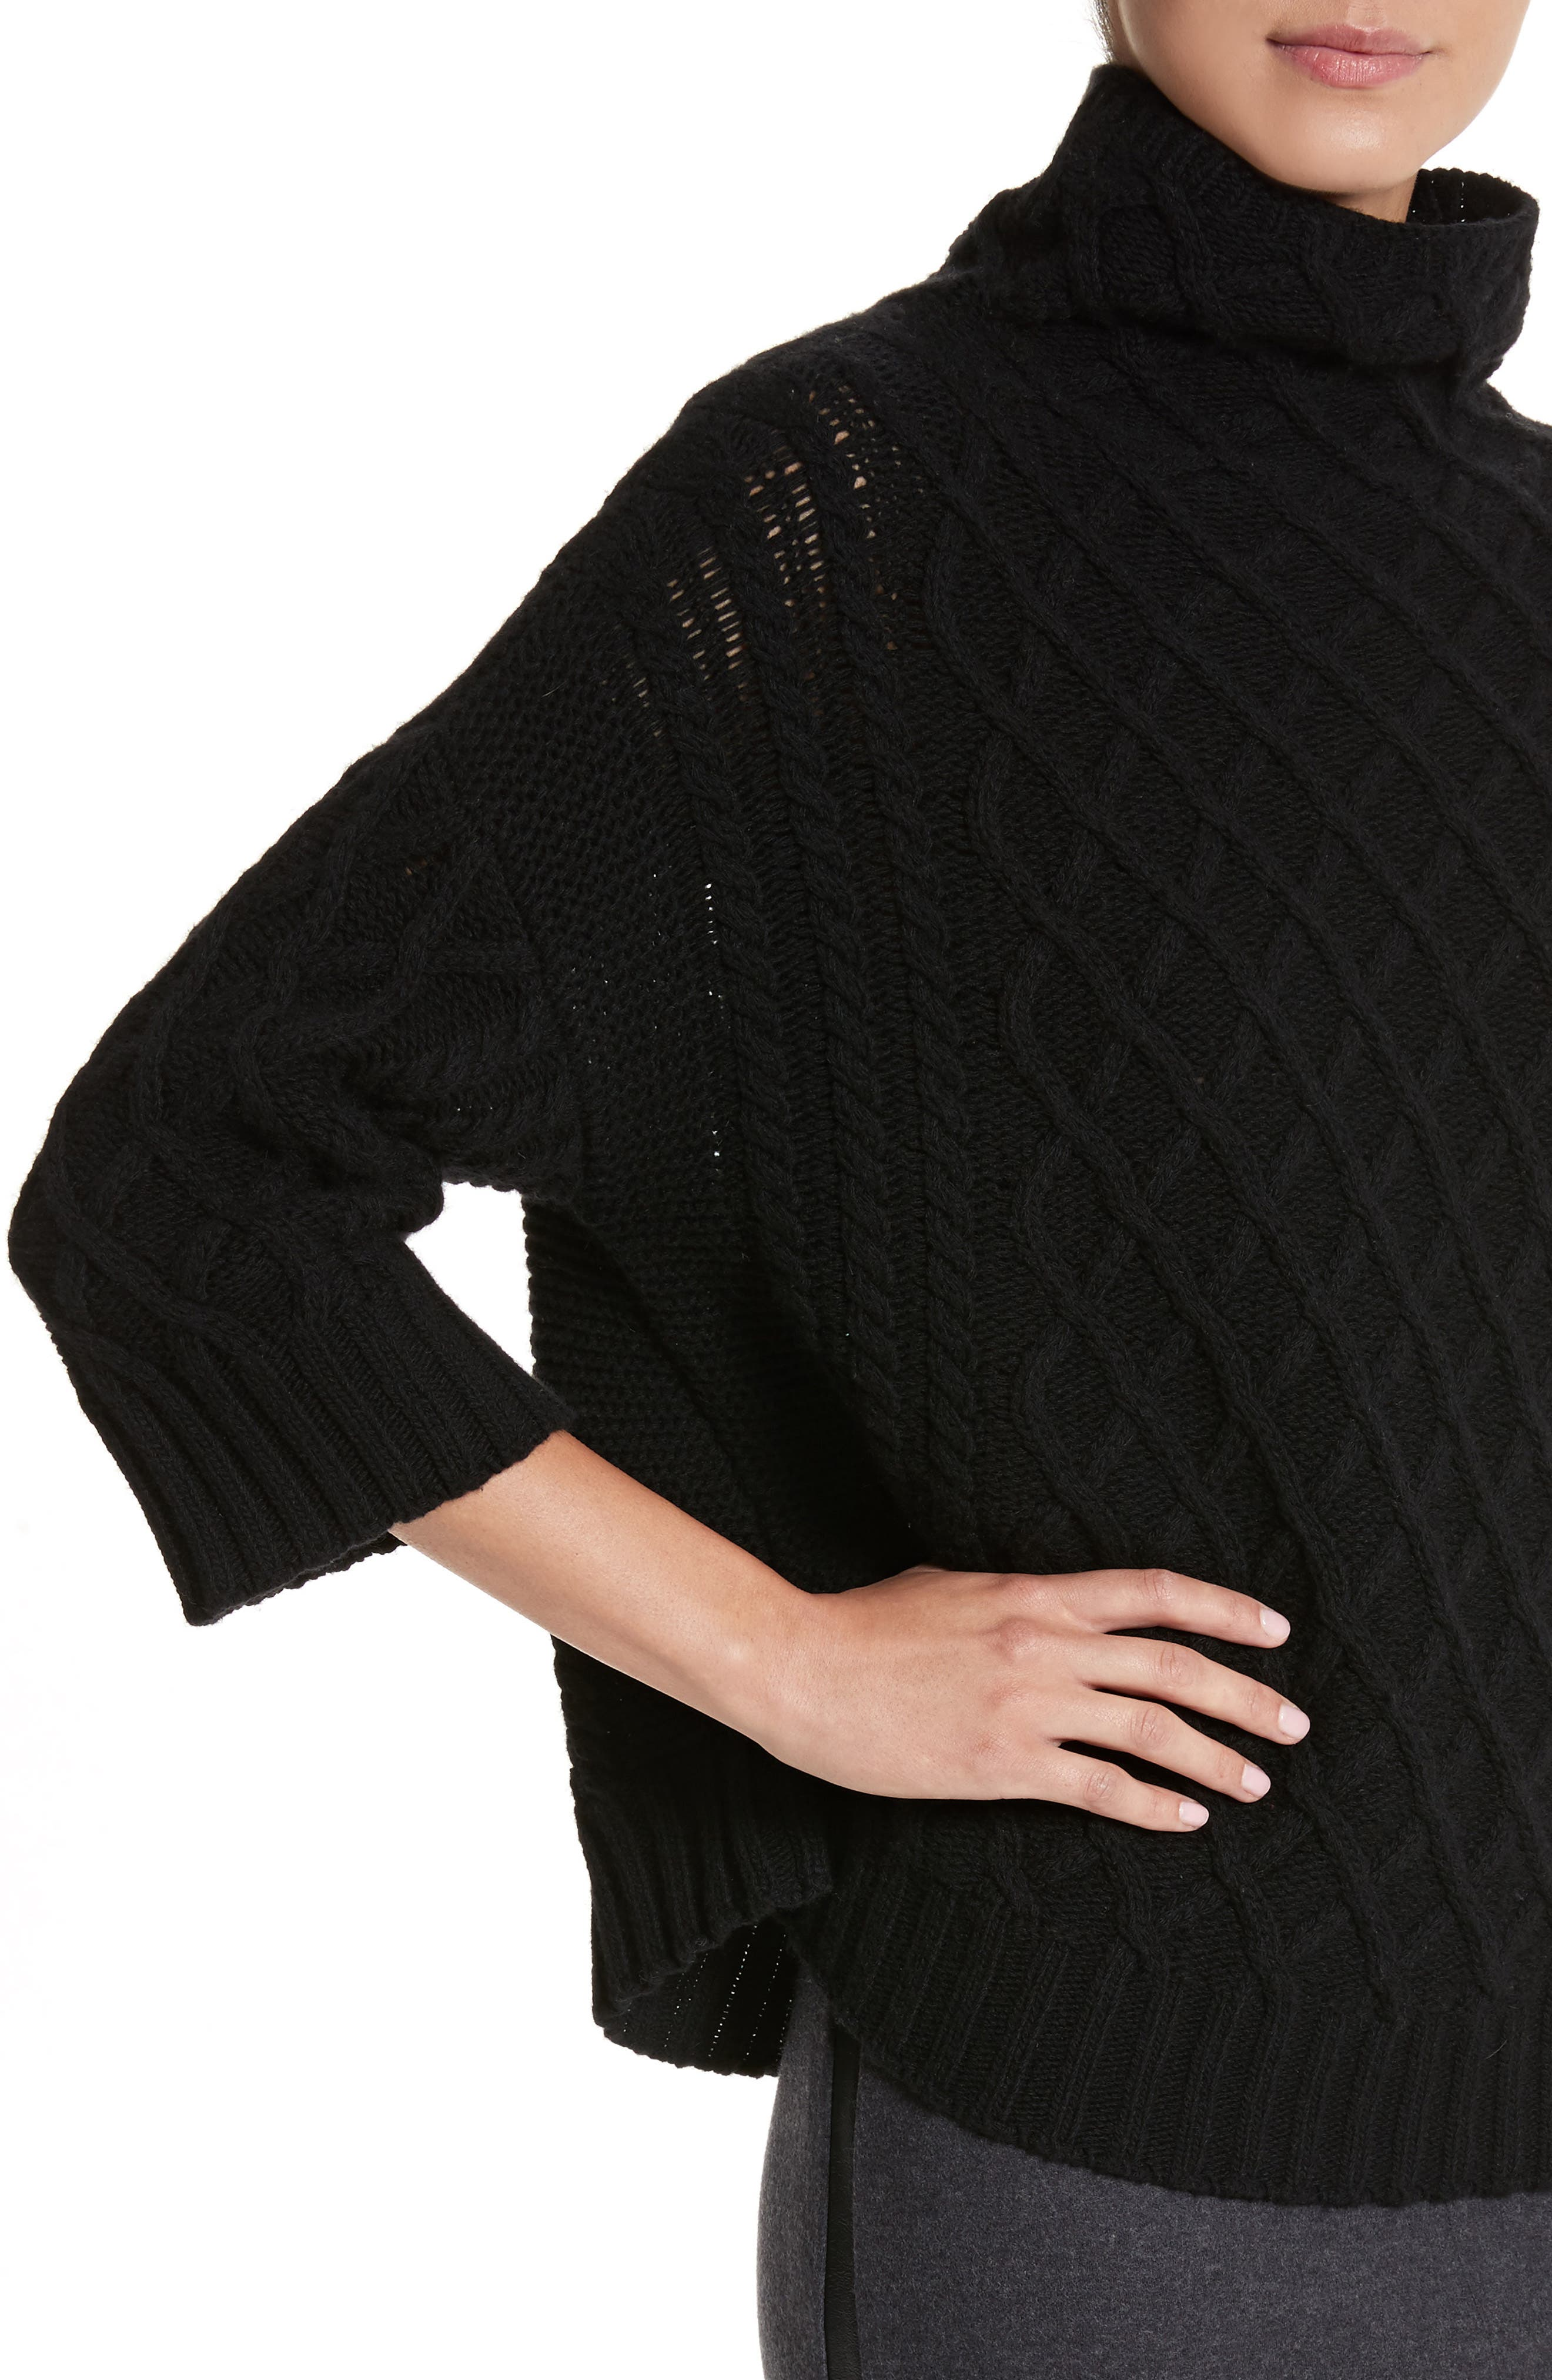 Cantone Wool & Cashmere Funnel Neck Sweater,                             Alternate thumbnail 4, color,